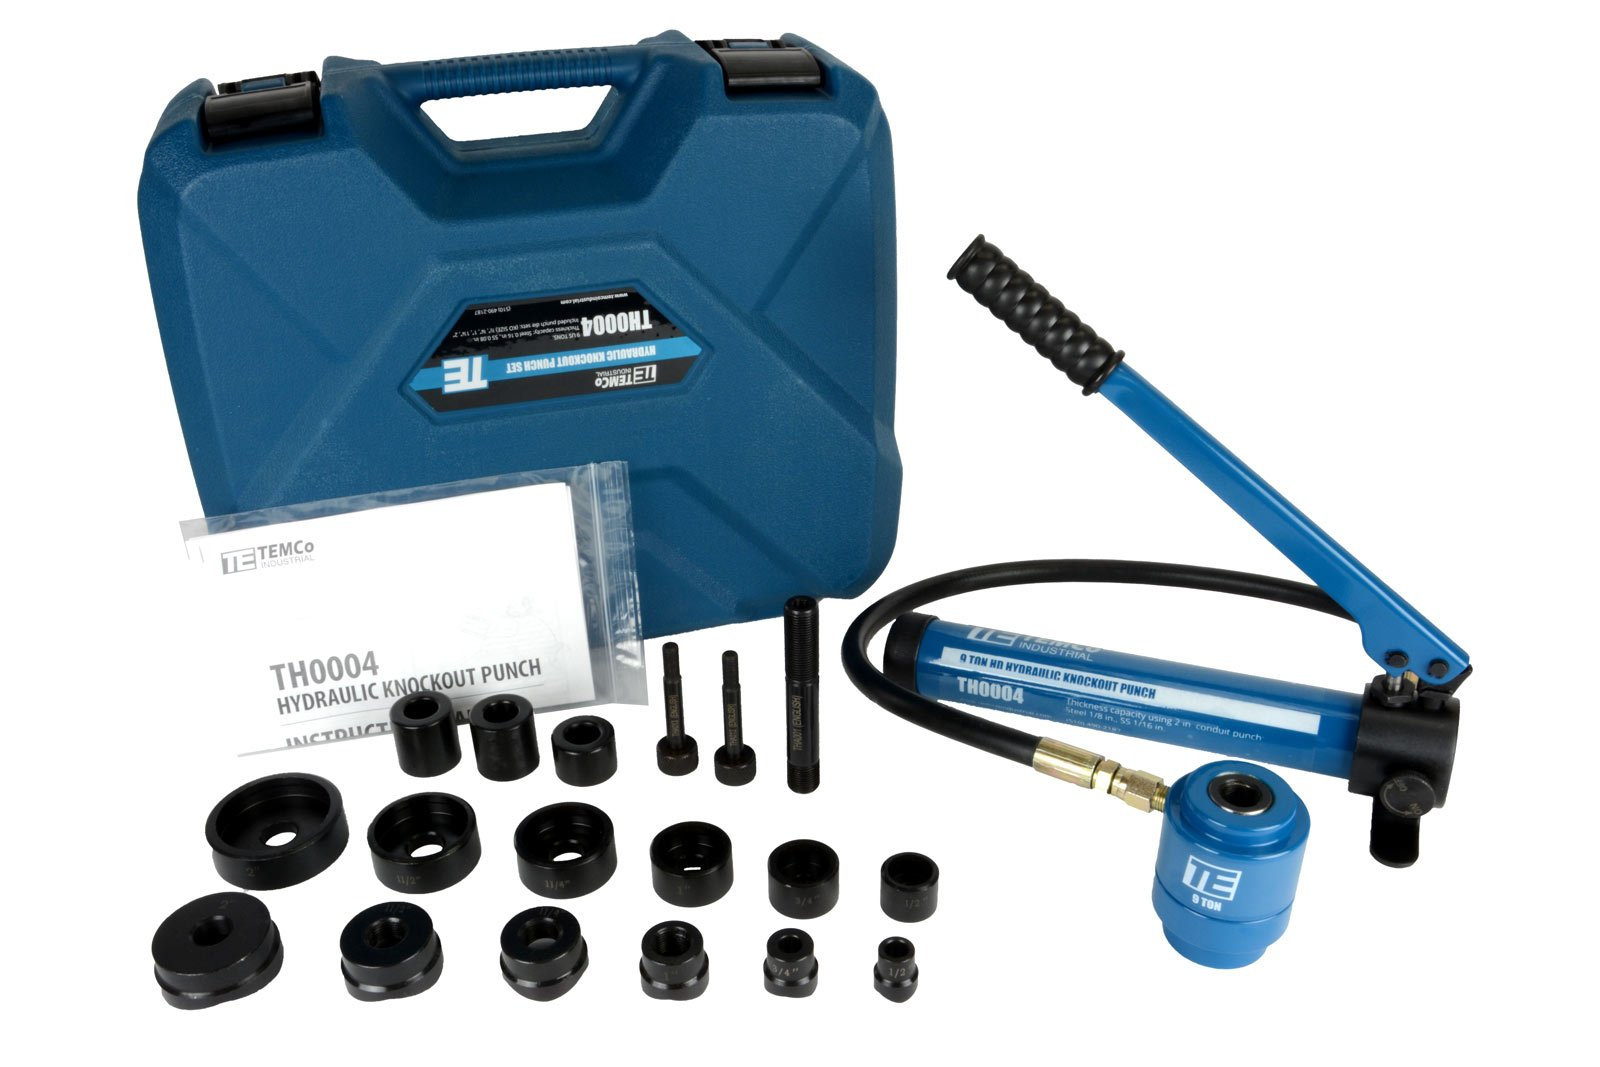 TEMCo Hydraulic Knockout Punch TH0004 - Electrical Conduit Hole Cutter Set KO Tool Kit 5 YEAR WARRANTY by Temco